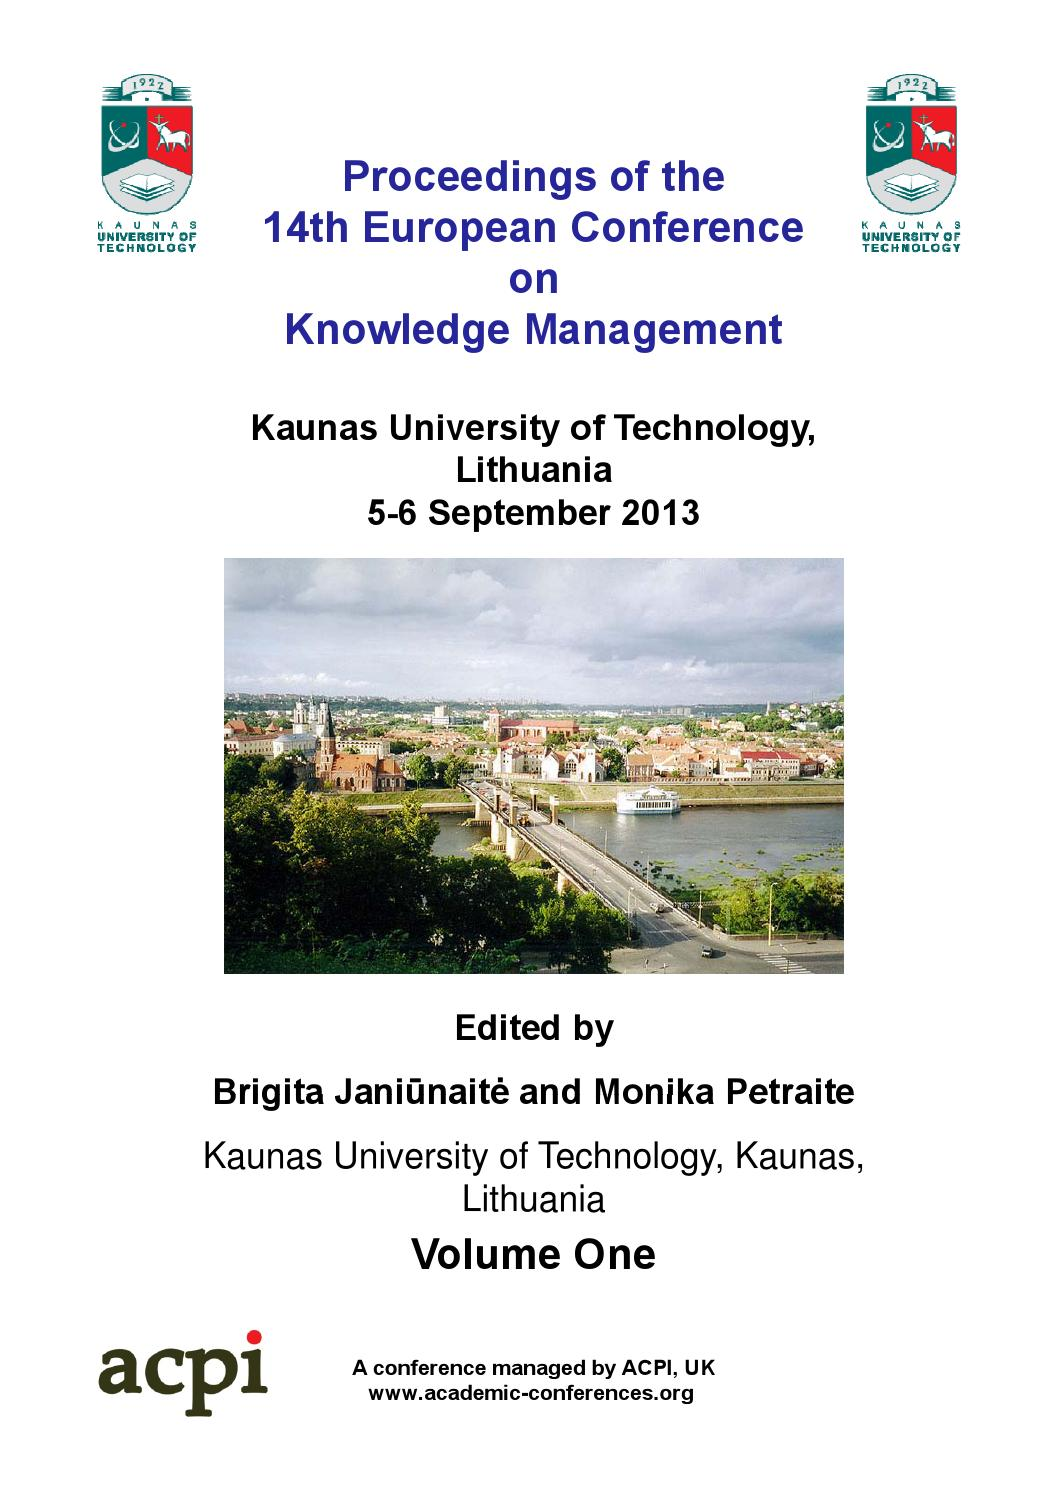 dissertation knowledge management the discipline of knowledge management lessons from the km strategies of professional services firms by academic